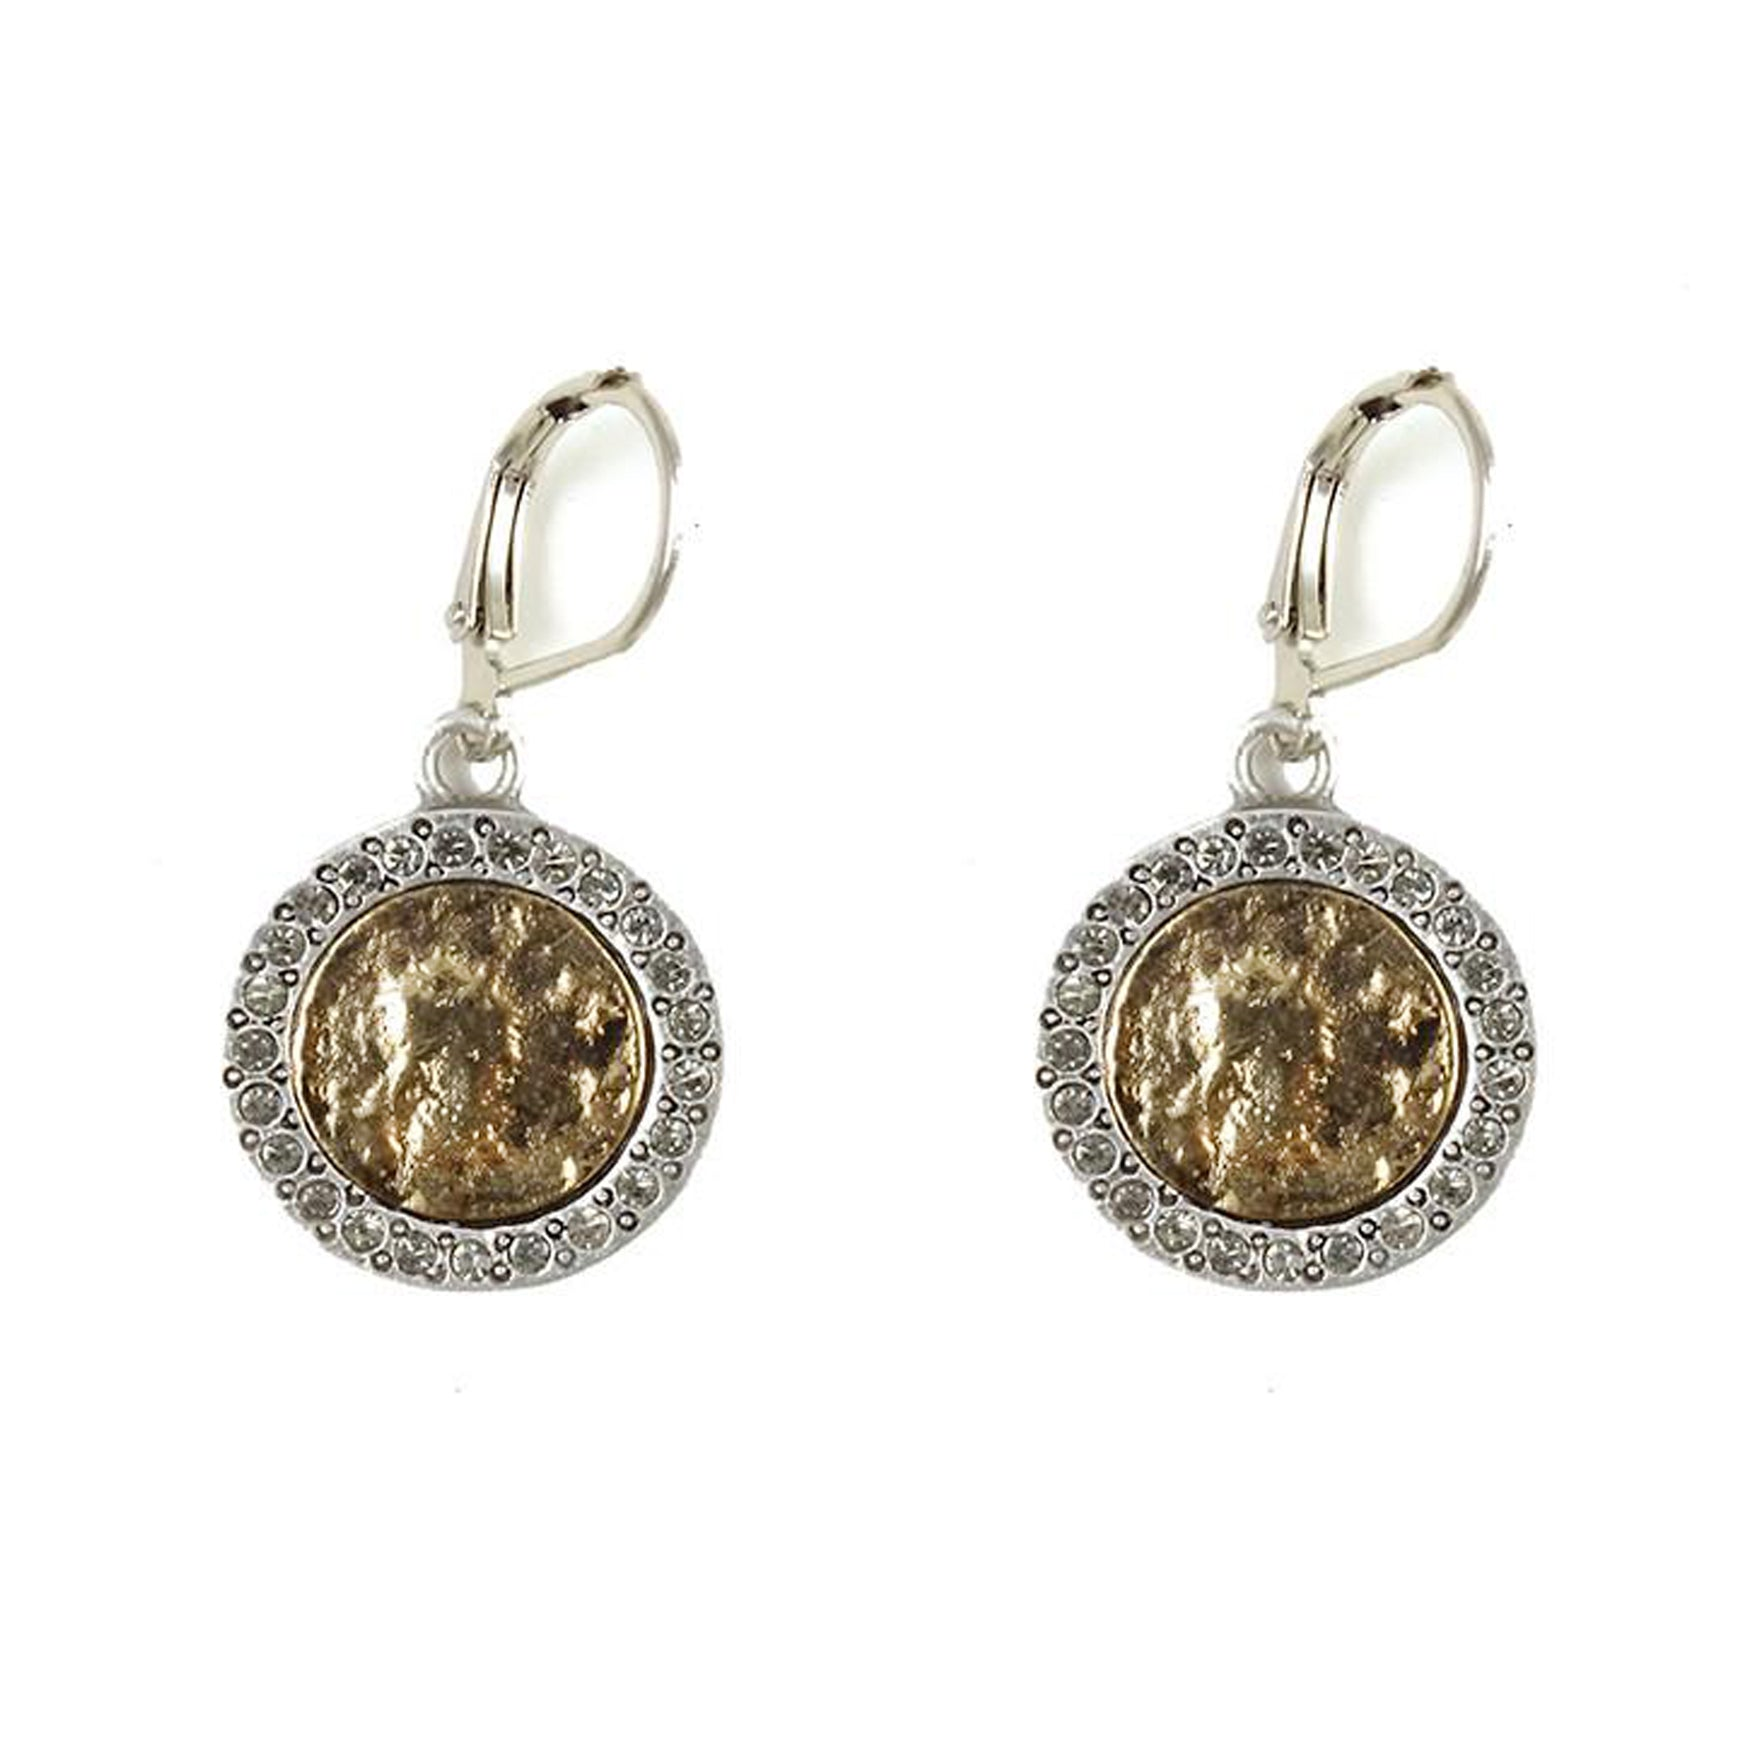 VINTAGE SILVER HESTIA COIN EARRINGS